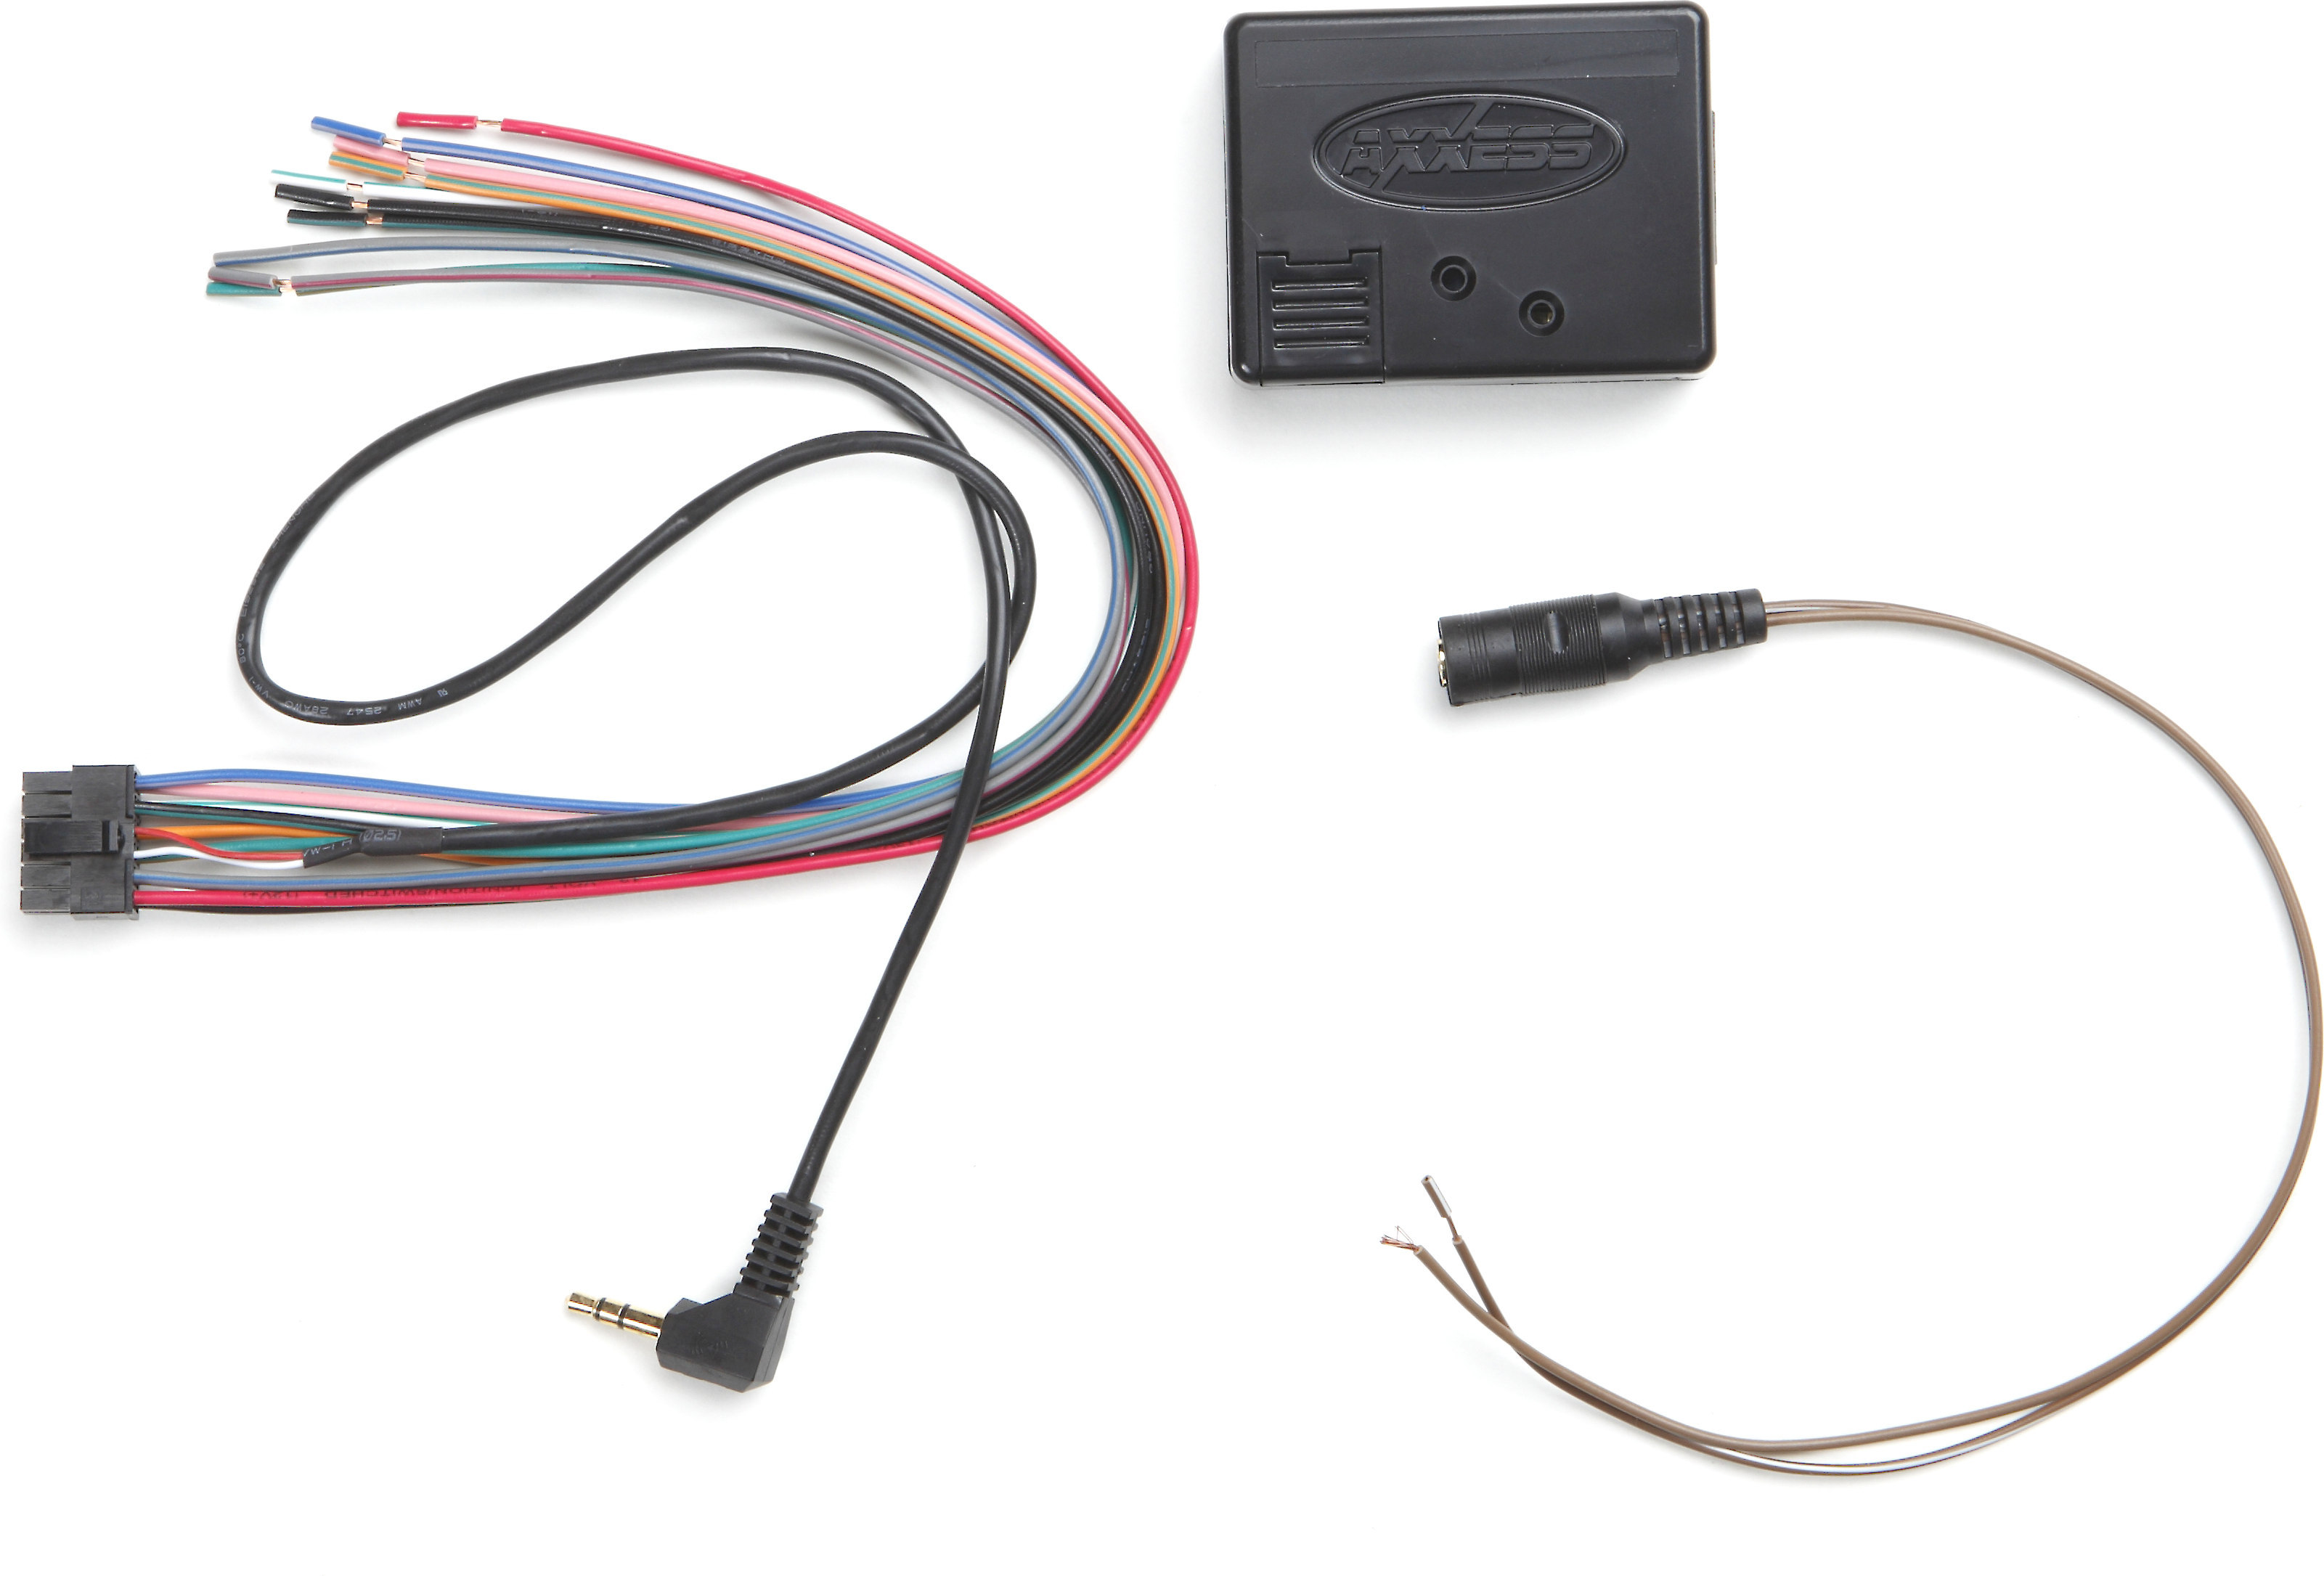 Marvelous Axxess Aswc 1 Steering Wheel Control Adapter Connects Your Cars Wiring Cloud Monangrecoveryedborg